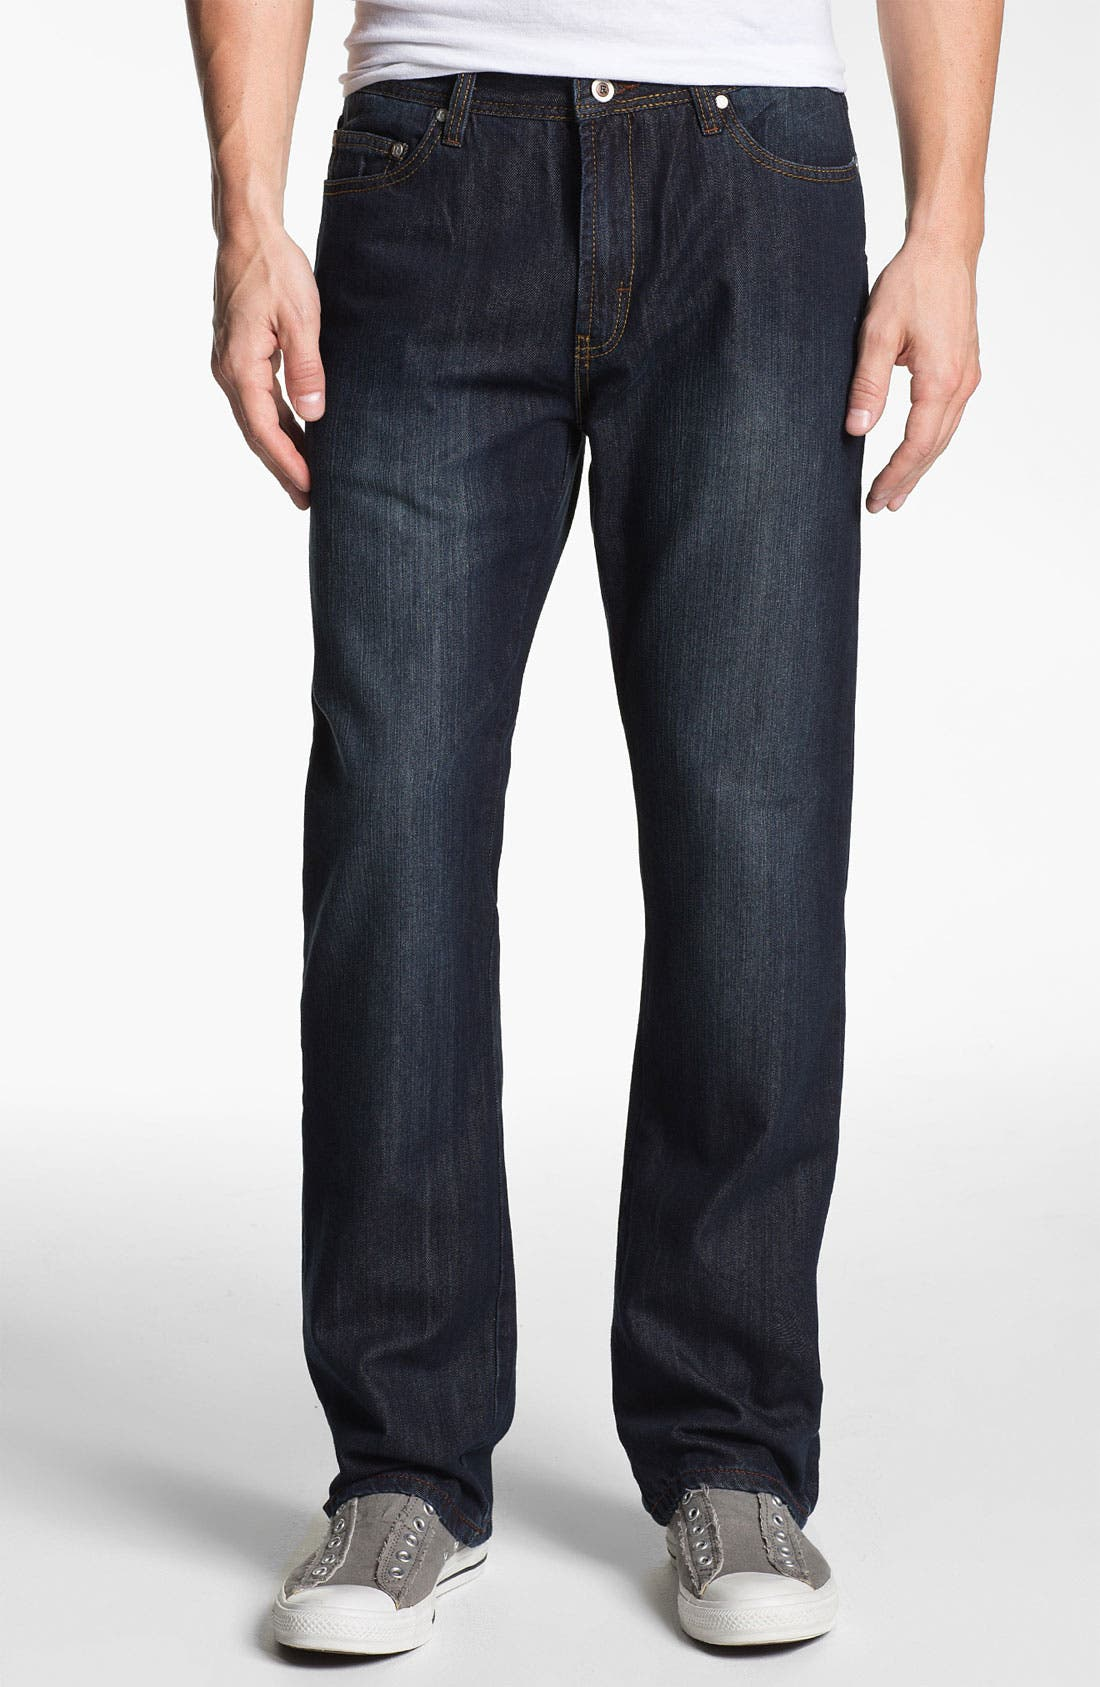 Alternate Image 1 Selected - ROAD 'Freedom' Relaxed Fit Straight Leg Jeans (Dark Vintage)